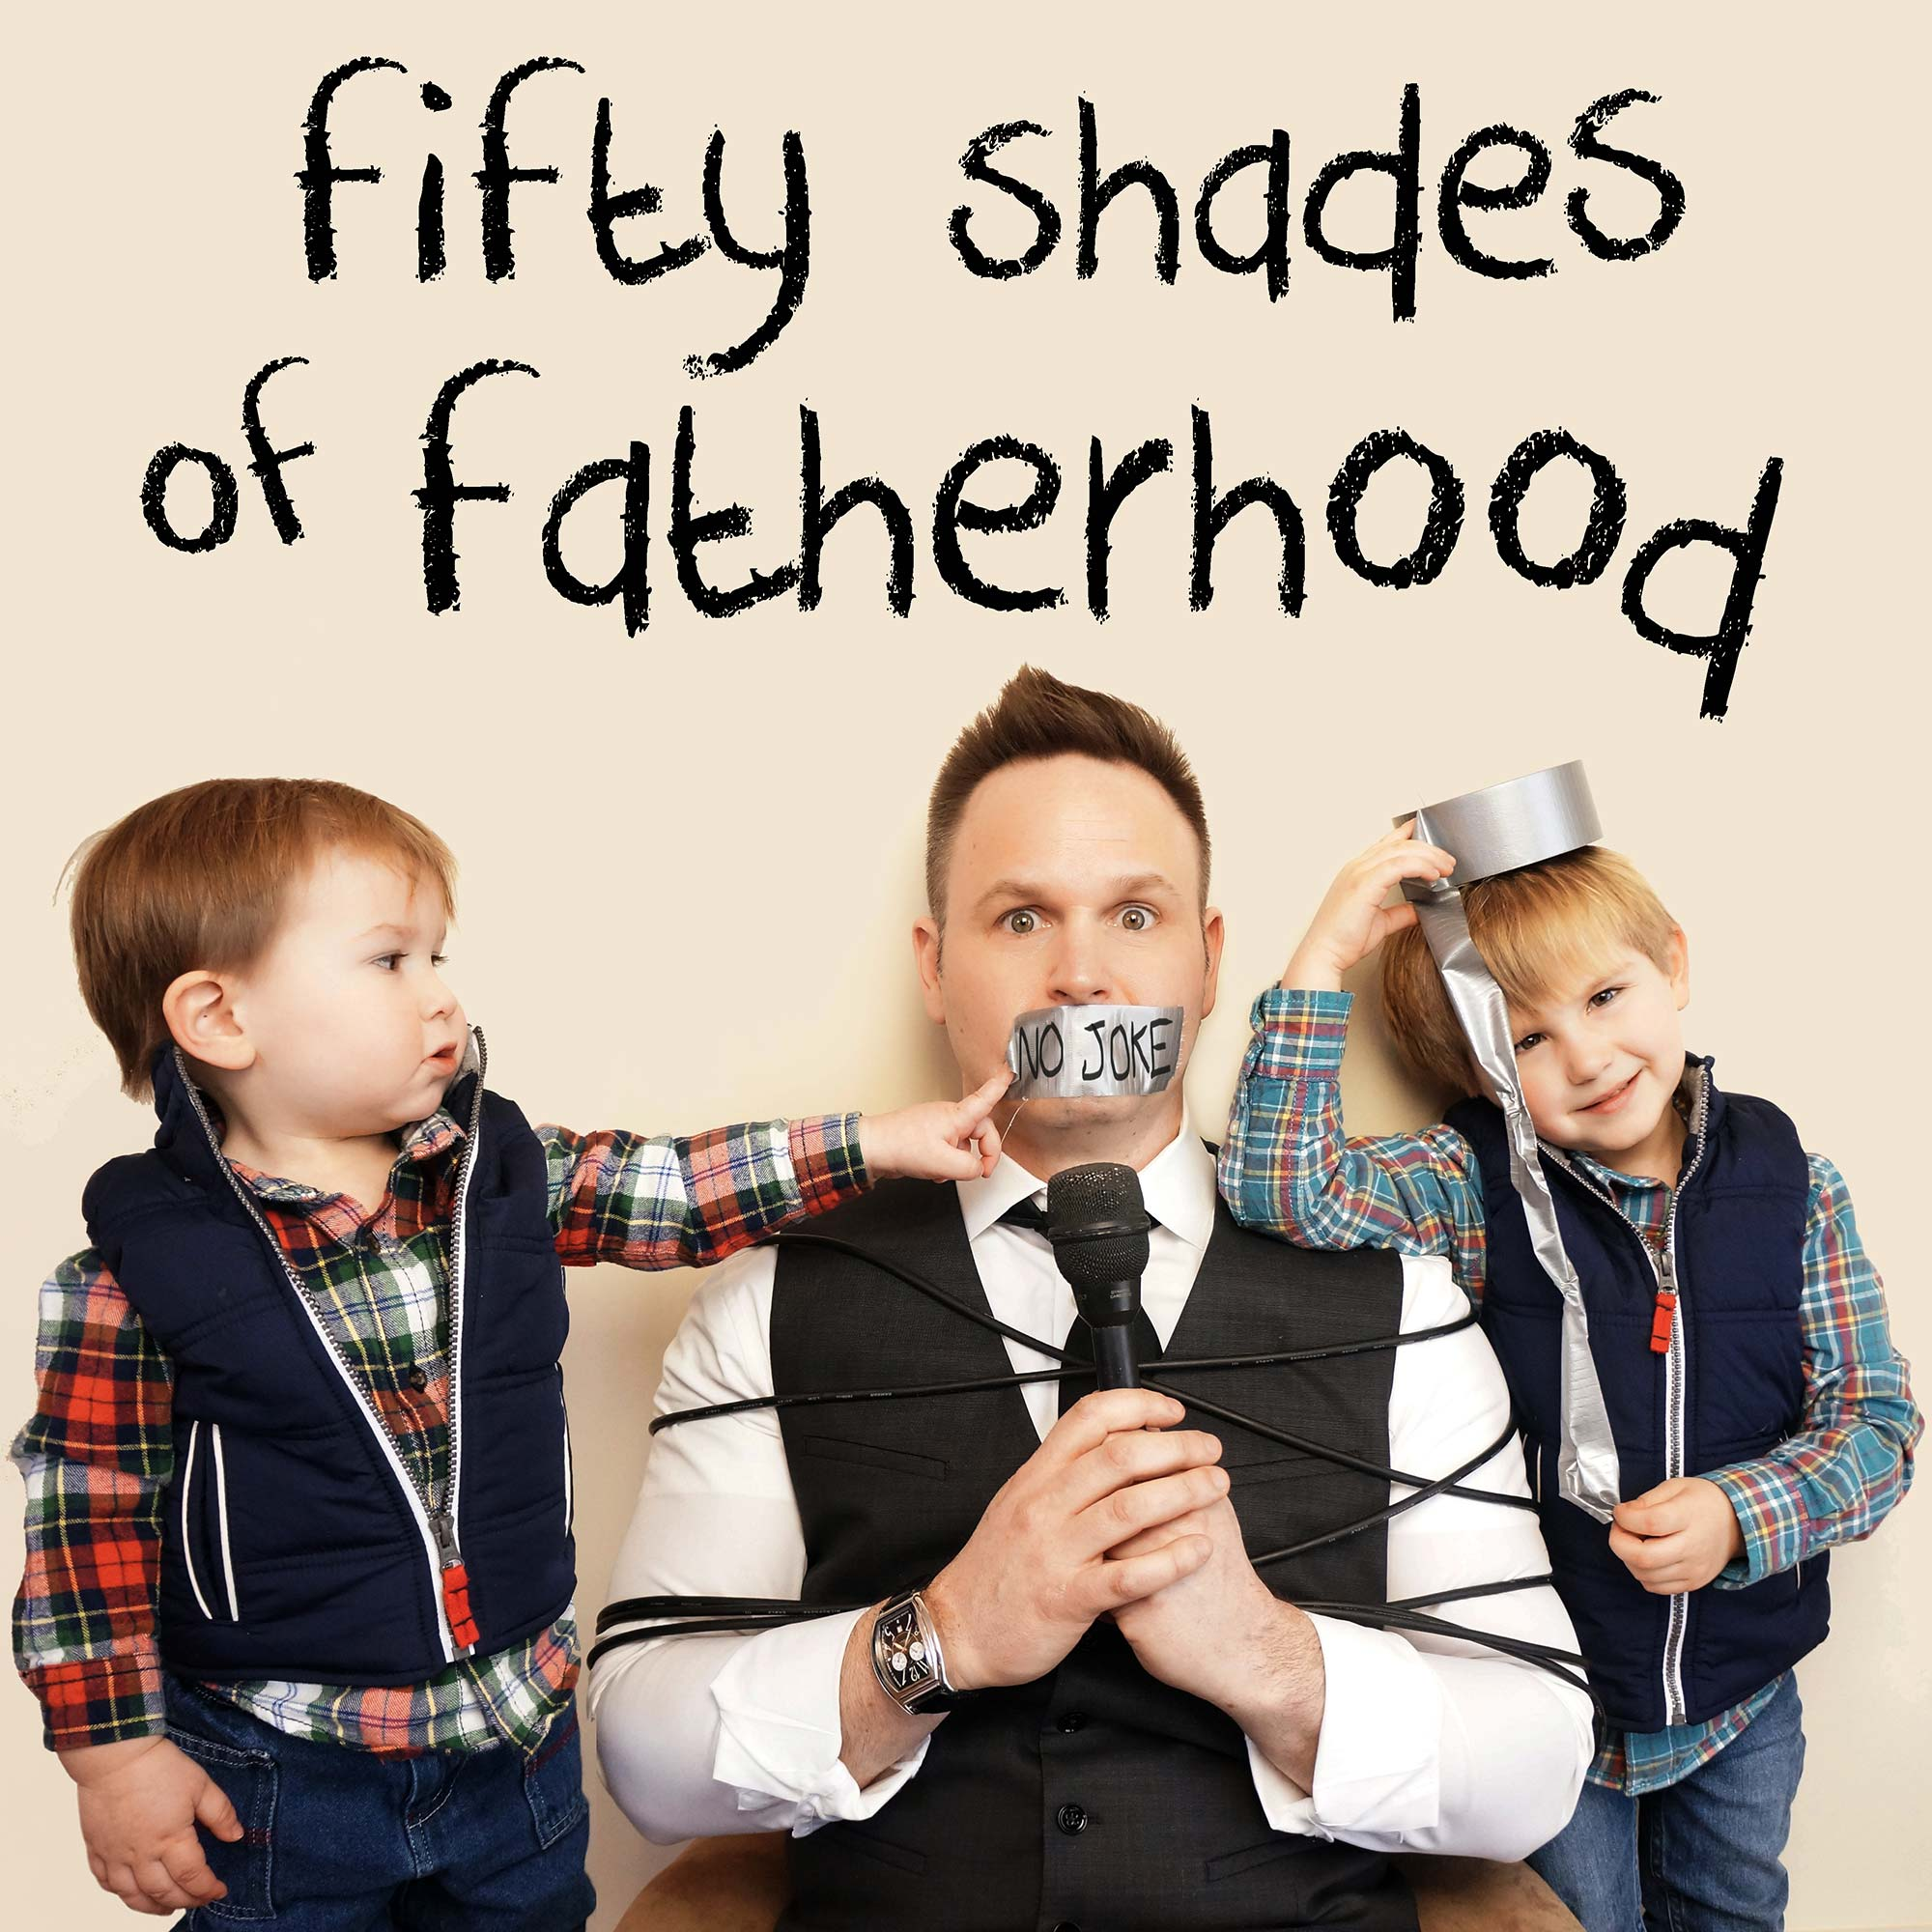 Tim Krompier - Fifty Shades of Fatherhood Album